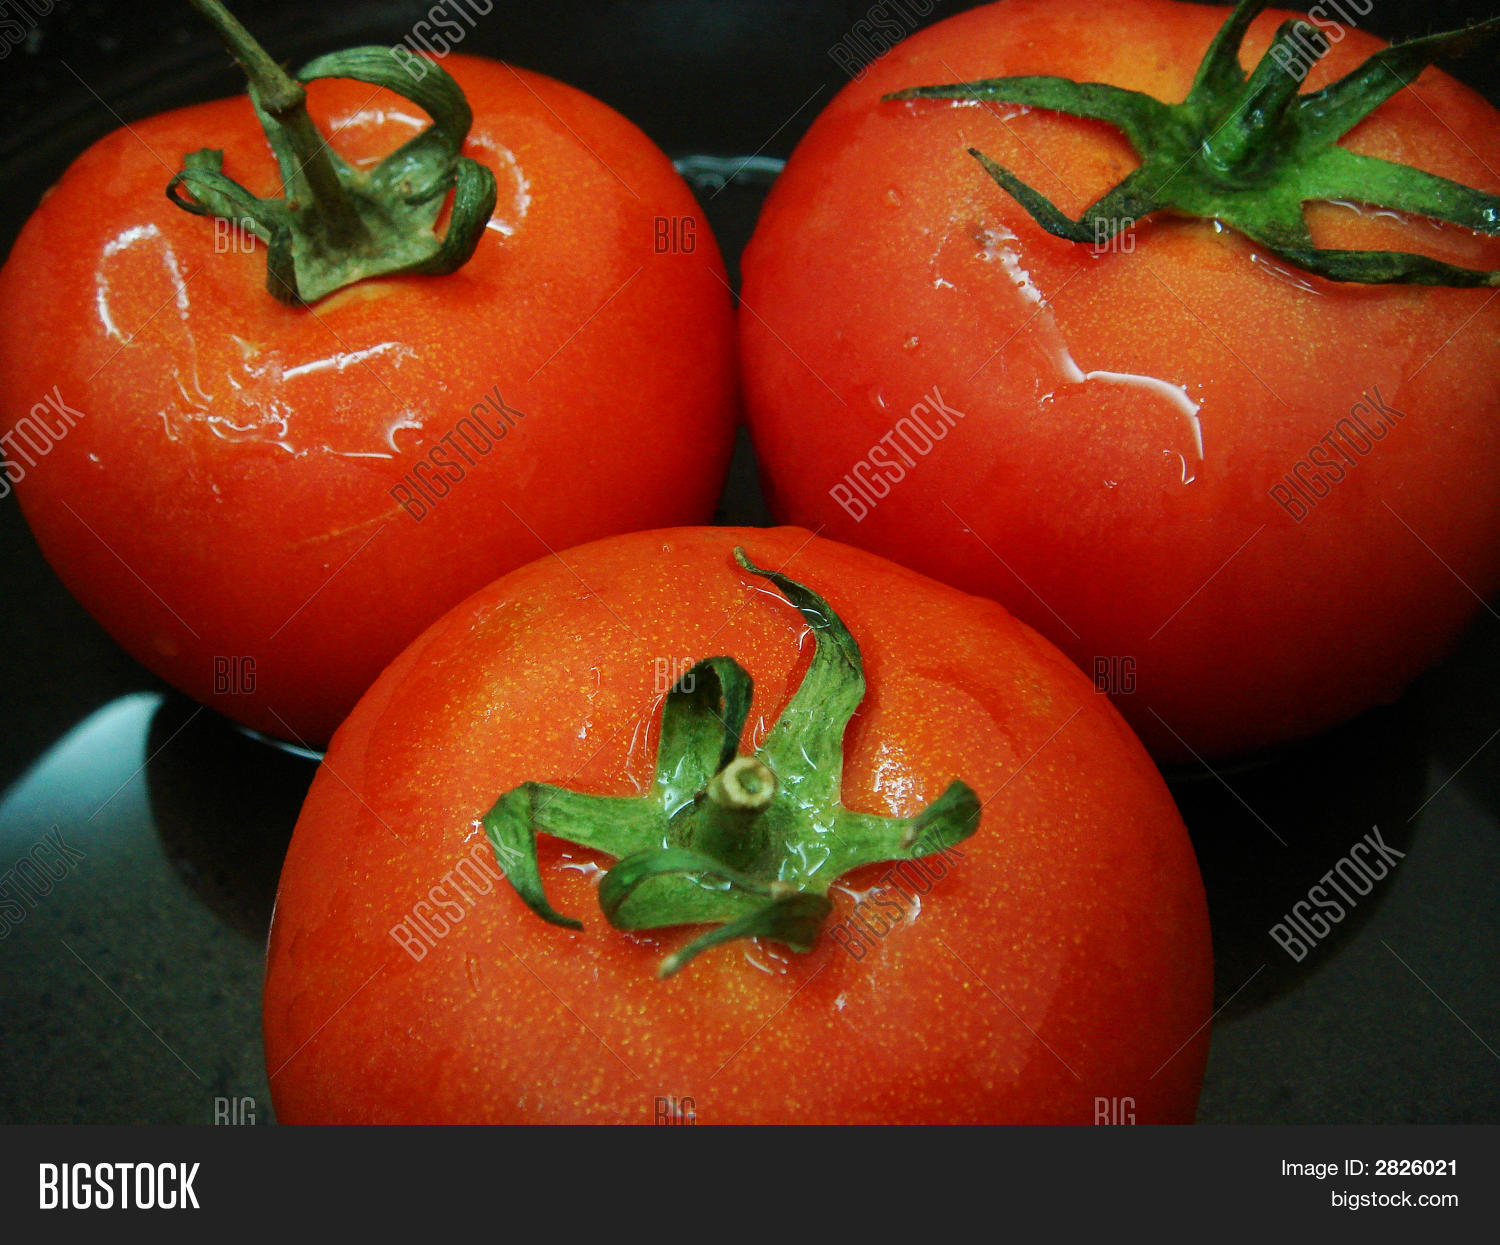 juicy red tomato company essay